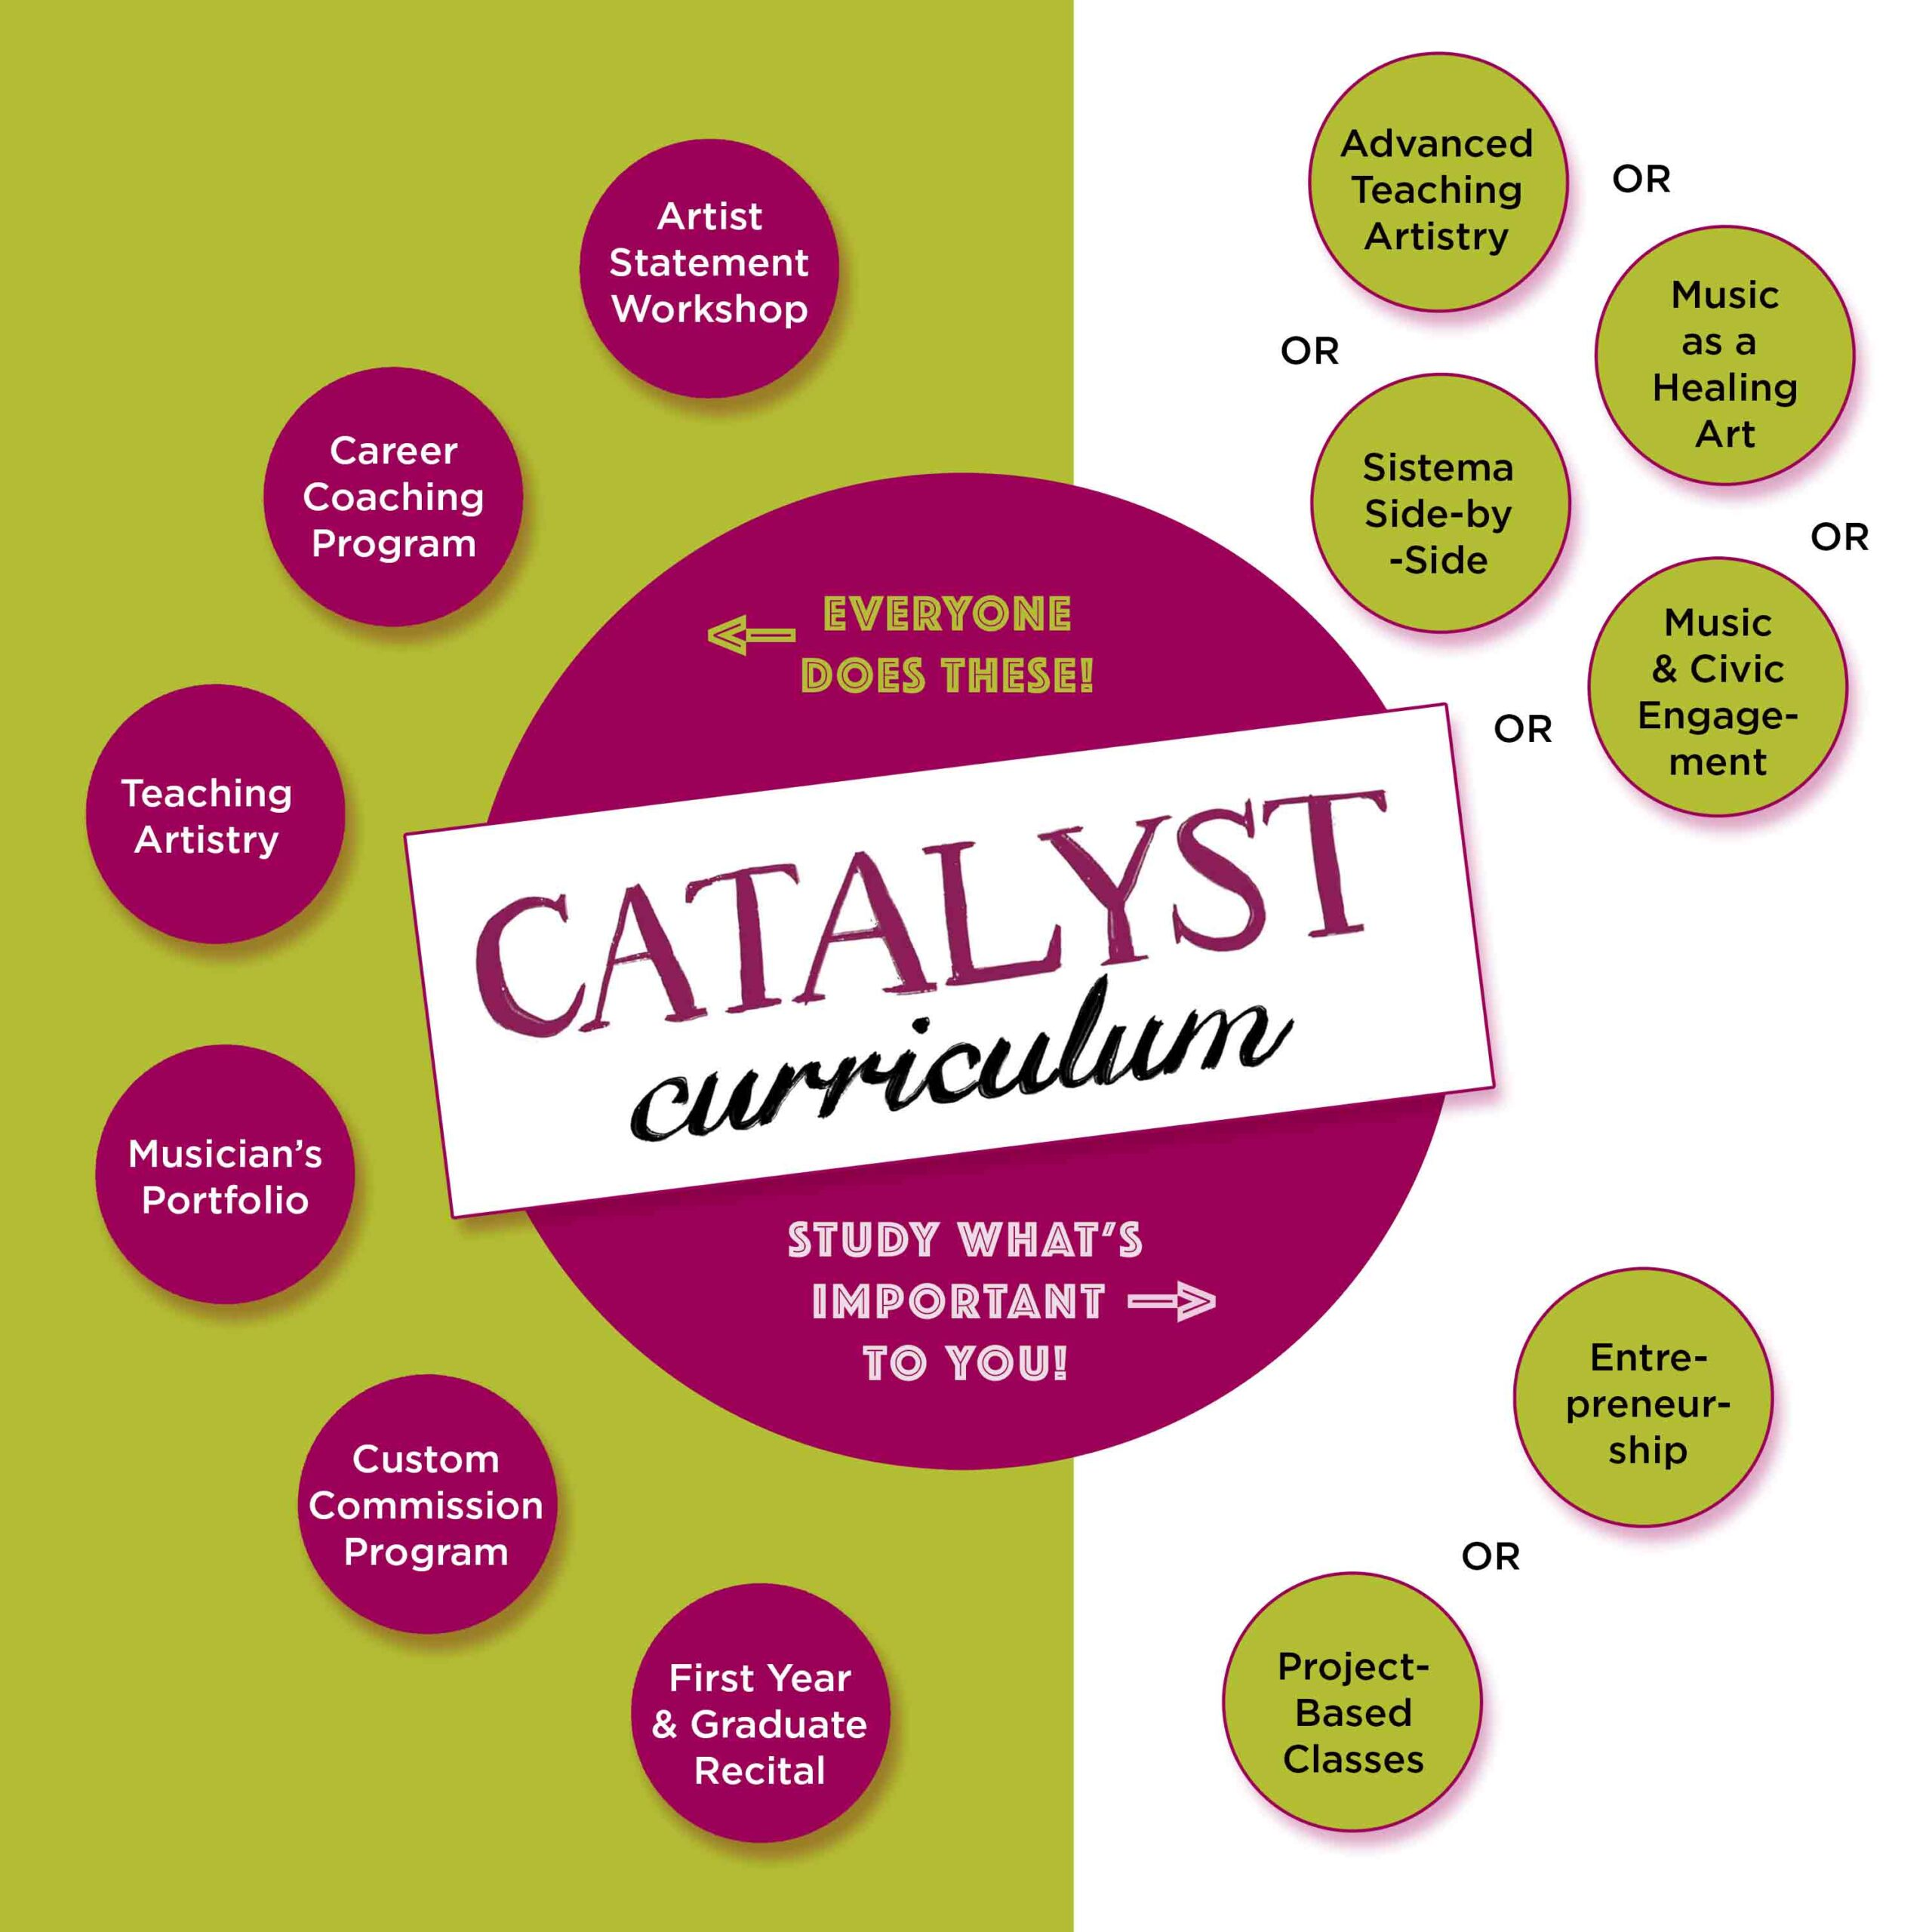 CATALYST Curriculum. Everyone does these: Artist Statement Workshop, Career Coaching Program, Teaching Artistry, Musician's Portfolio, Custom Commission Program, First Year & Graduate Recital. Study What's Important to You: Advanced Teaching Artistry OR Music as a Healing Art OR Sistema Side-by-Side OR Music & Civic Engagement. Entrepreneurship OR Project-Based Classes.